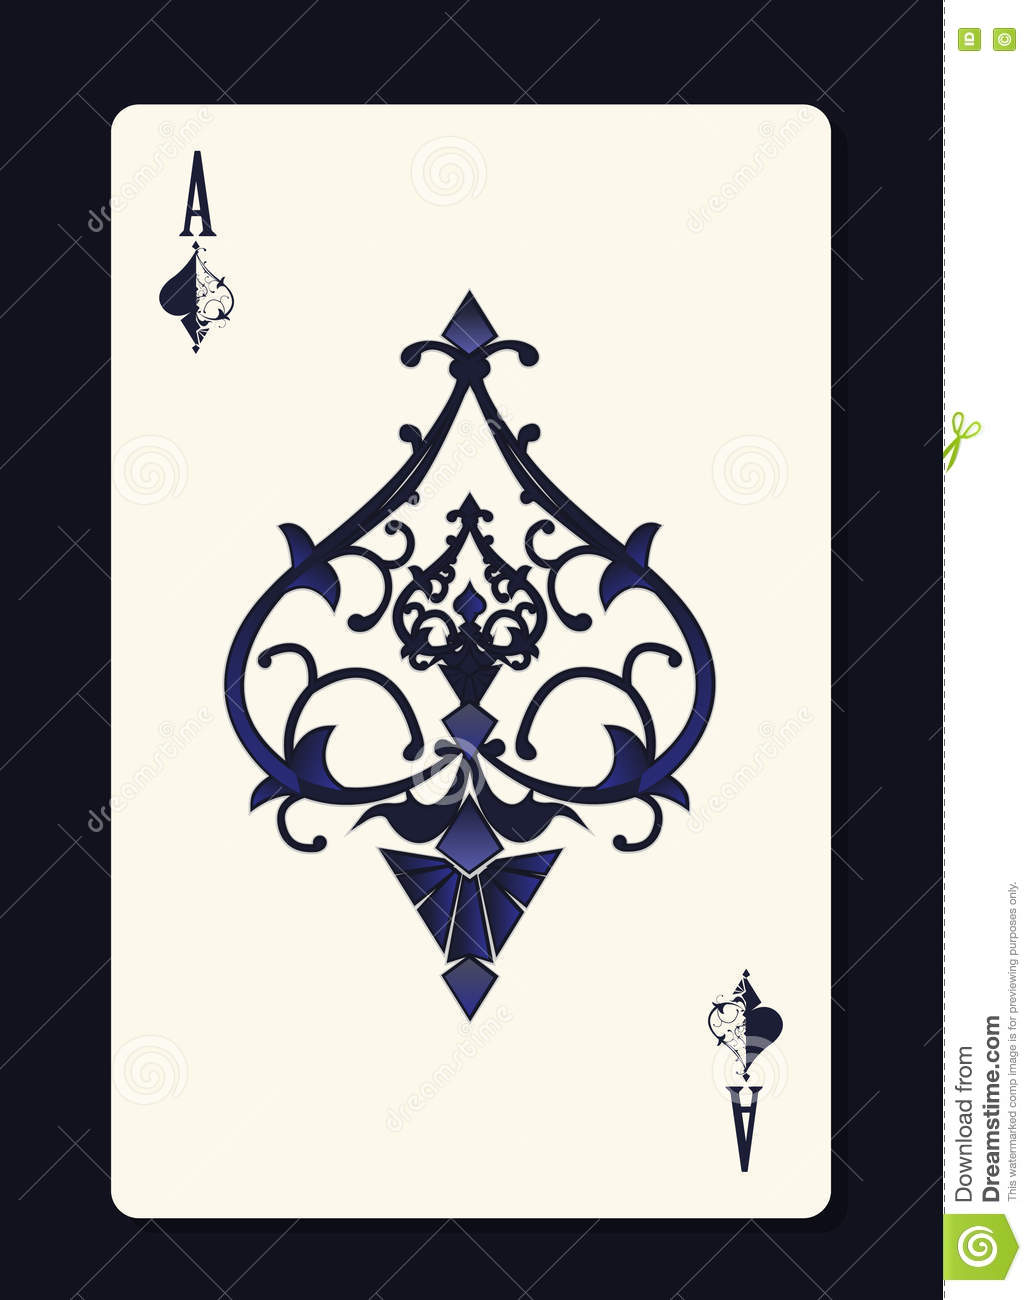 Ace of spades with forging curl pattern stock vector illustration ace of spades with forging curl pattern biocorpaavc Choice Image